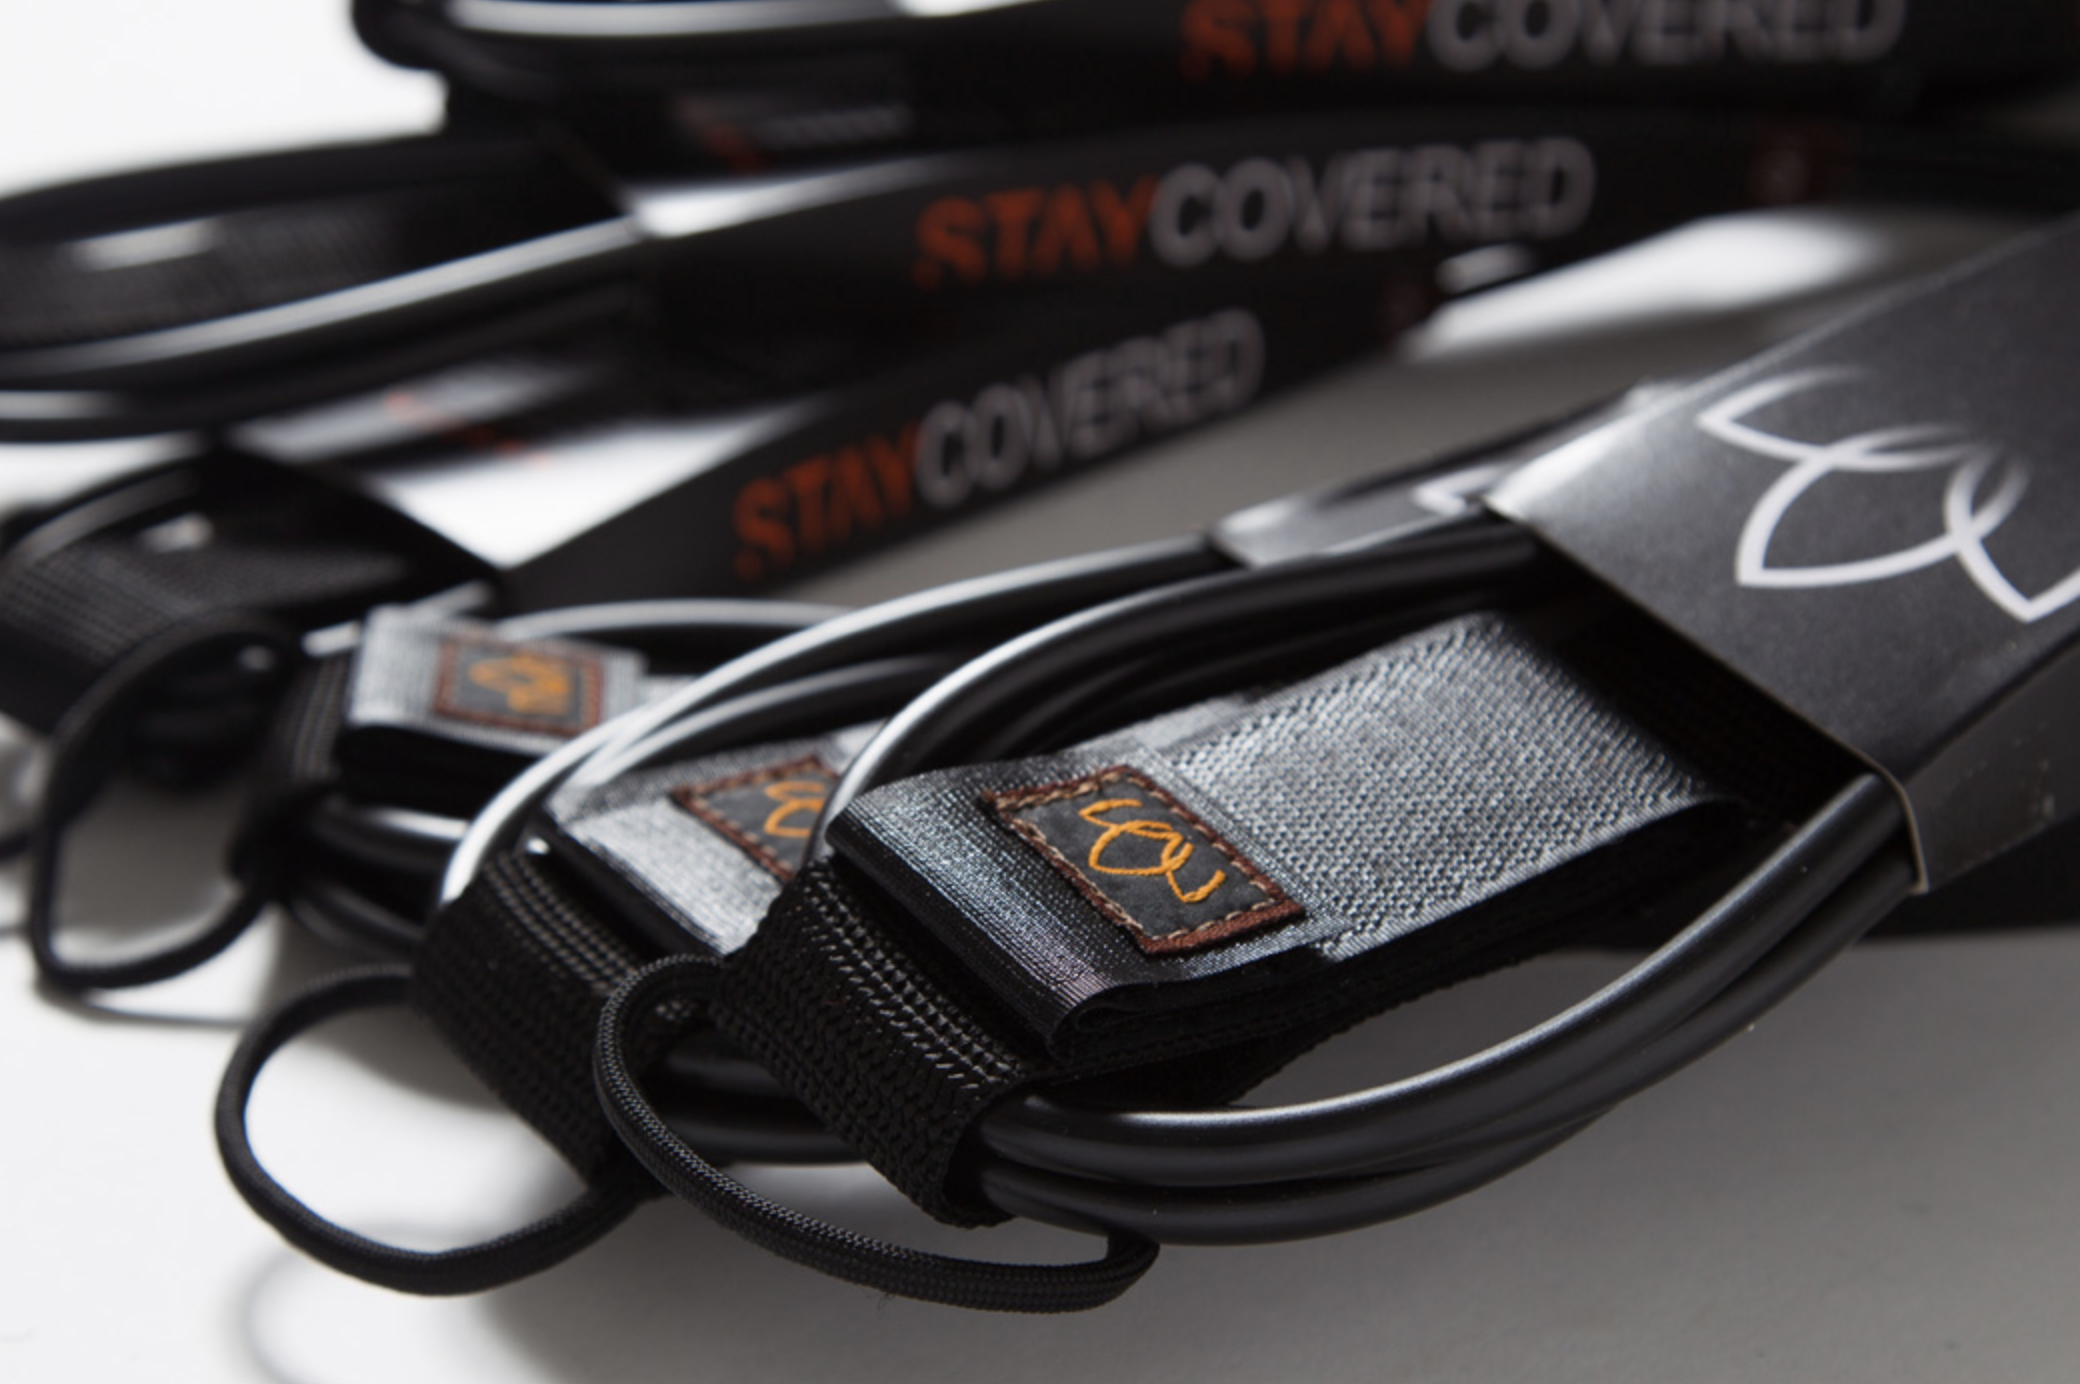 [STAY COVERED] リーシュ 7ft COMP mat black